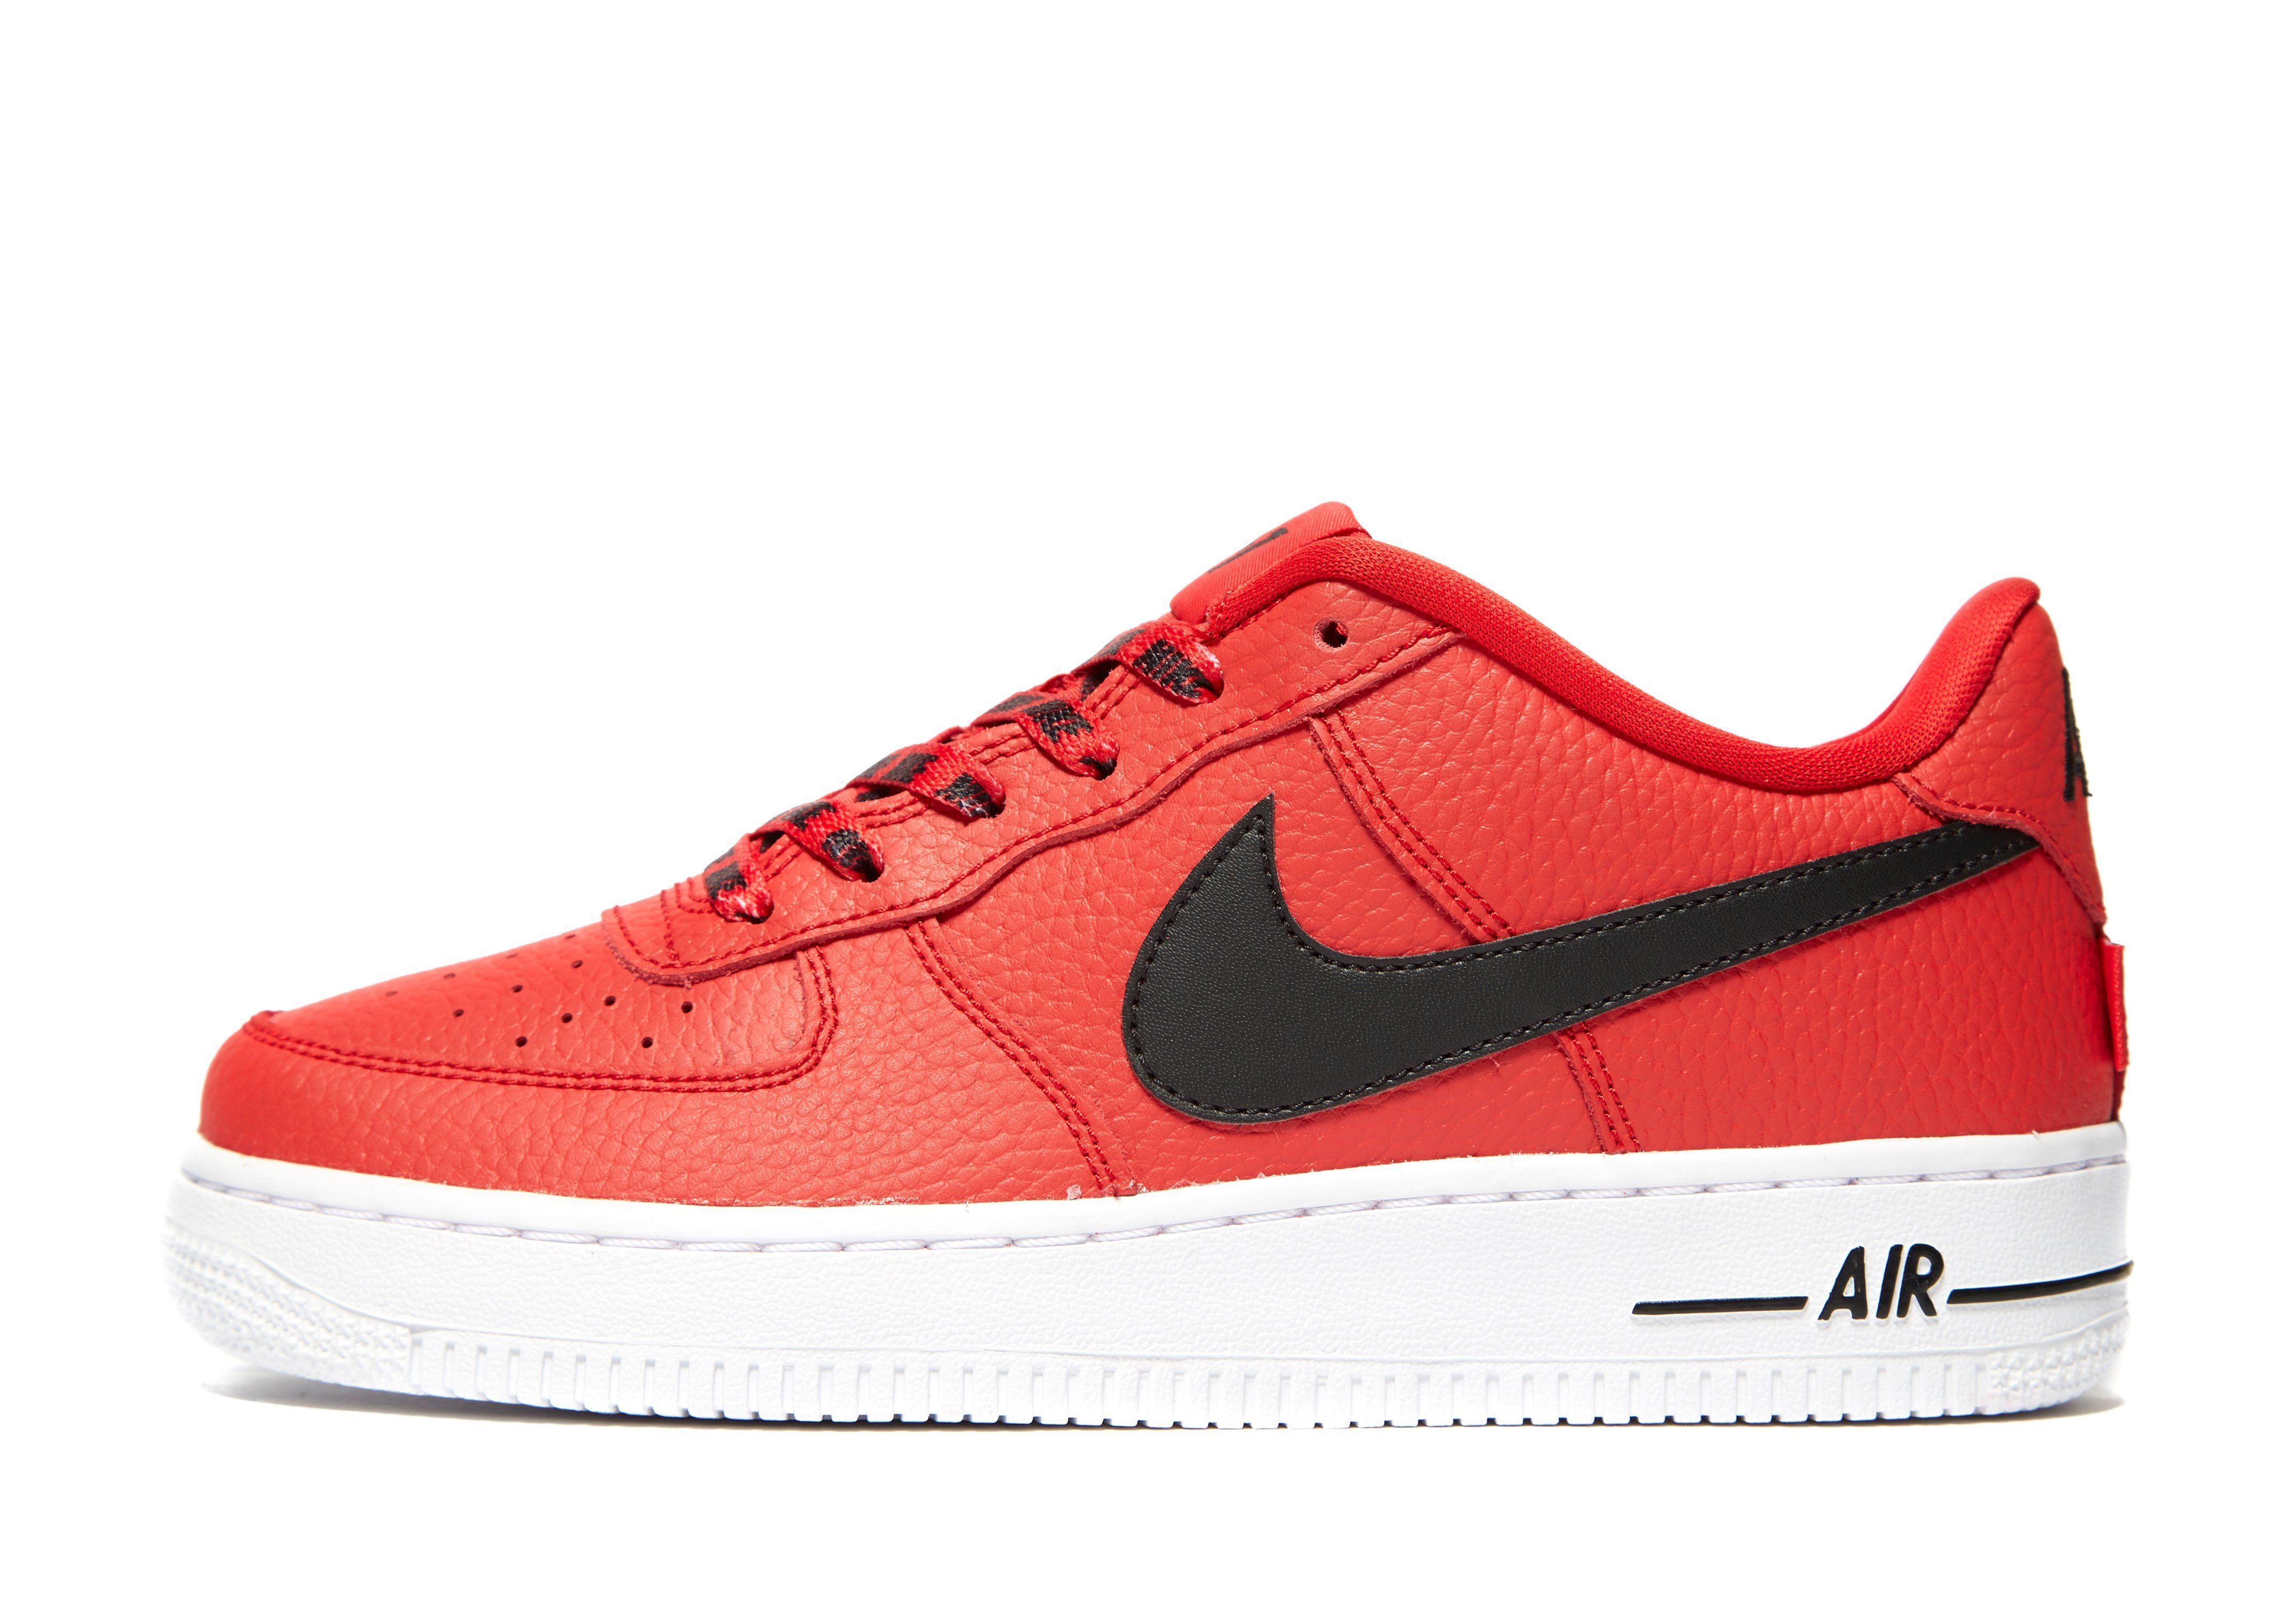 new style 4750b 220e9 Nike Air Force 1 Lo Junior - Shop online for Nike Air Force 1 Lo Junior